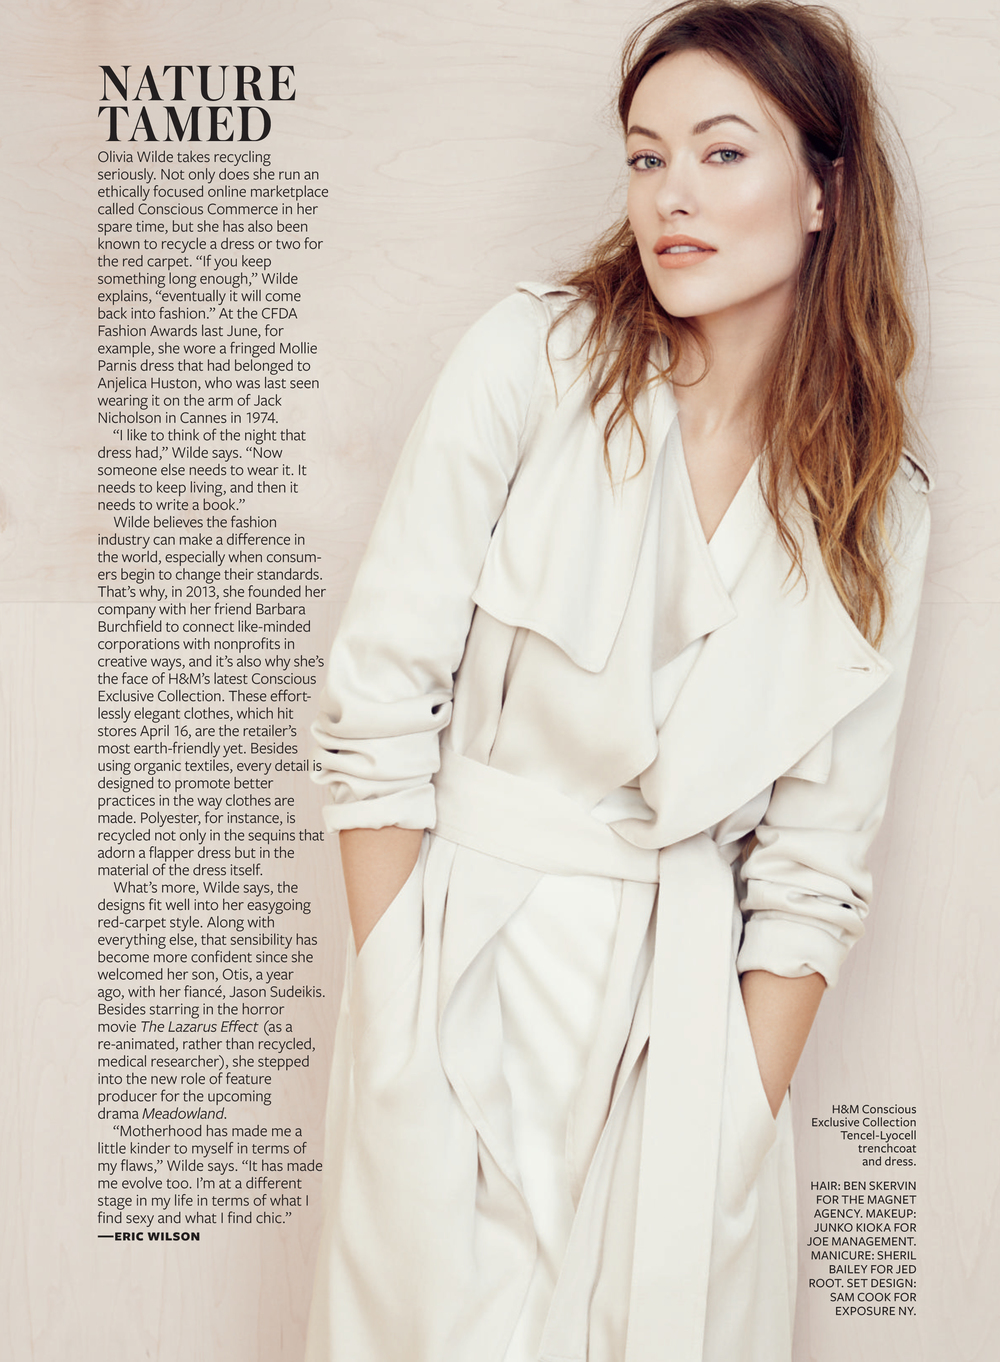 SC_EDITORIAL_INSTYLE_APRIL2015_DOWNTOEARTH_6.jpg